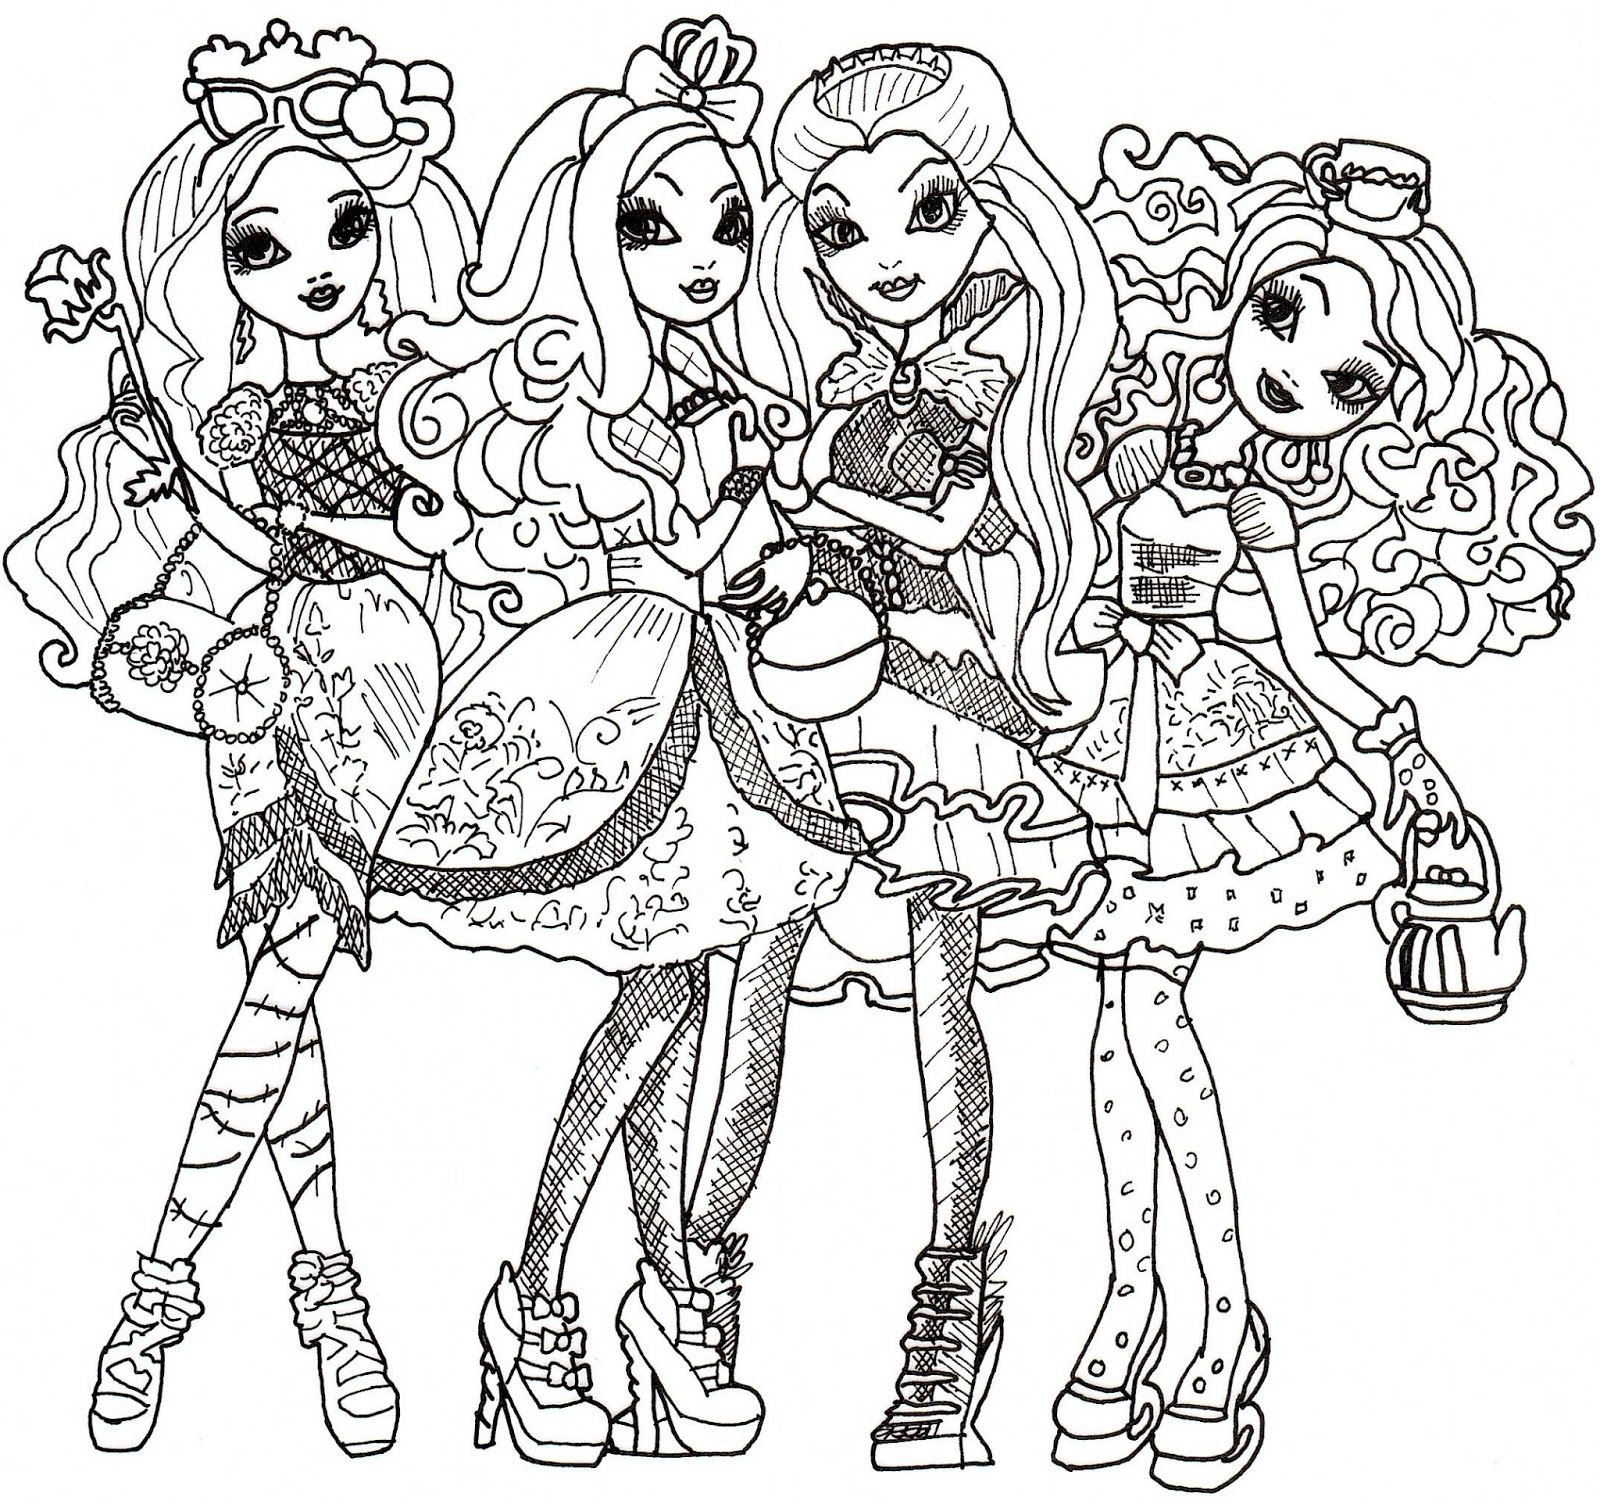 Ever after high | Eyerlin\'s 9th Birthday | Pinterest | Kinder ...